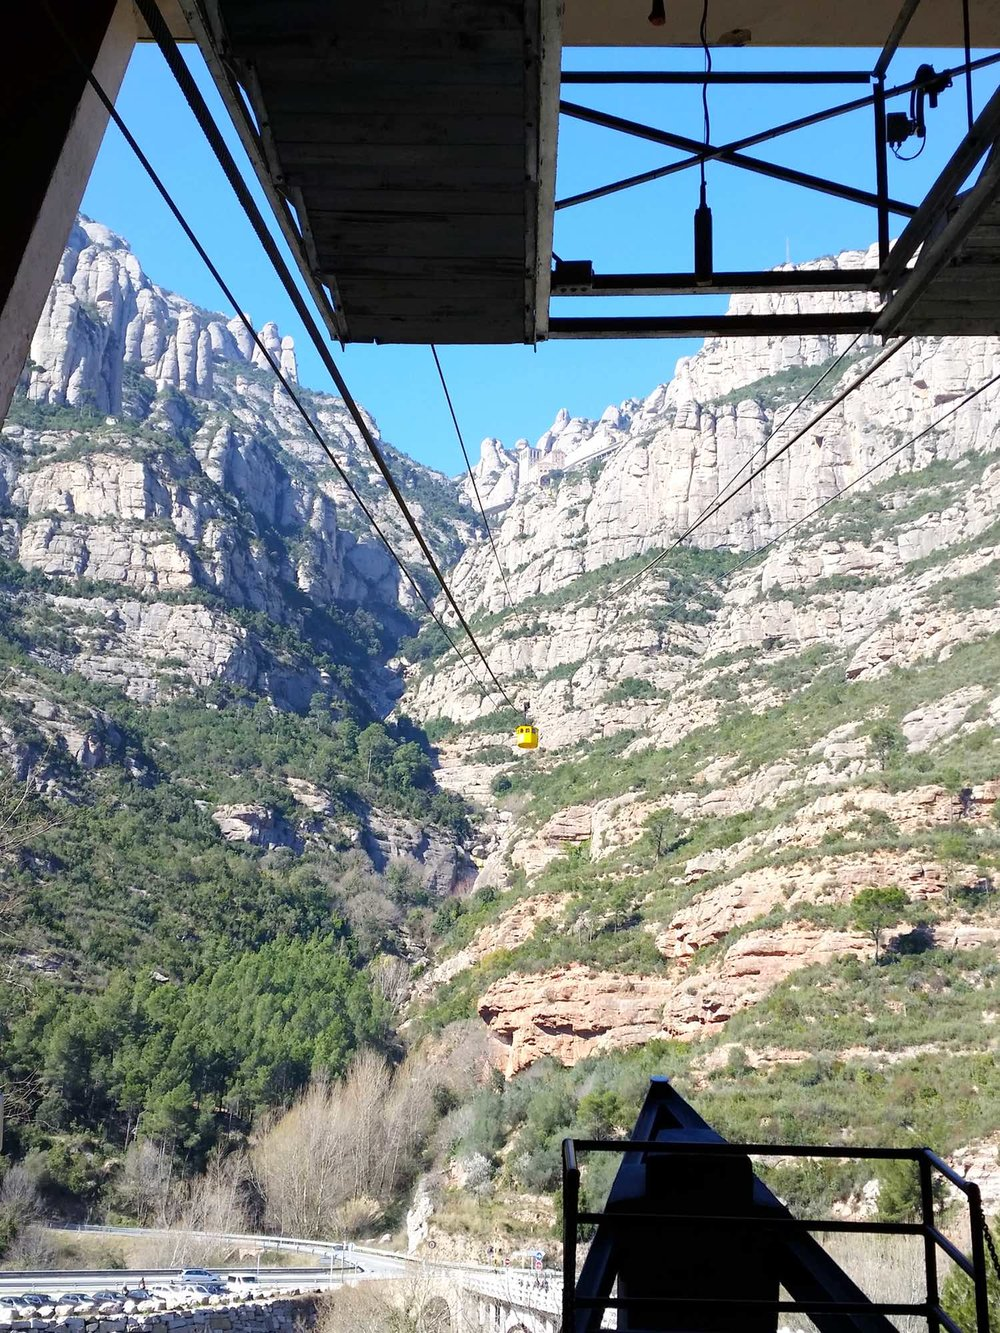 montserrat-catalonia-spain-character-32-c32-globetrotter-travel-cable-car-james-bond